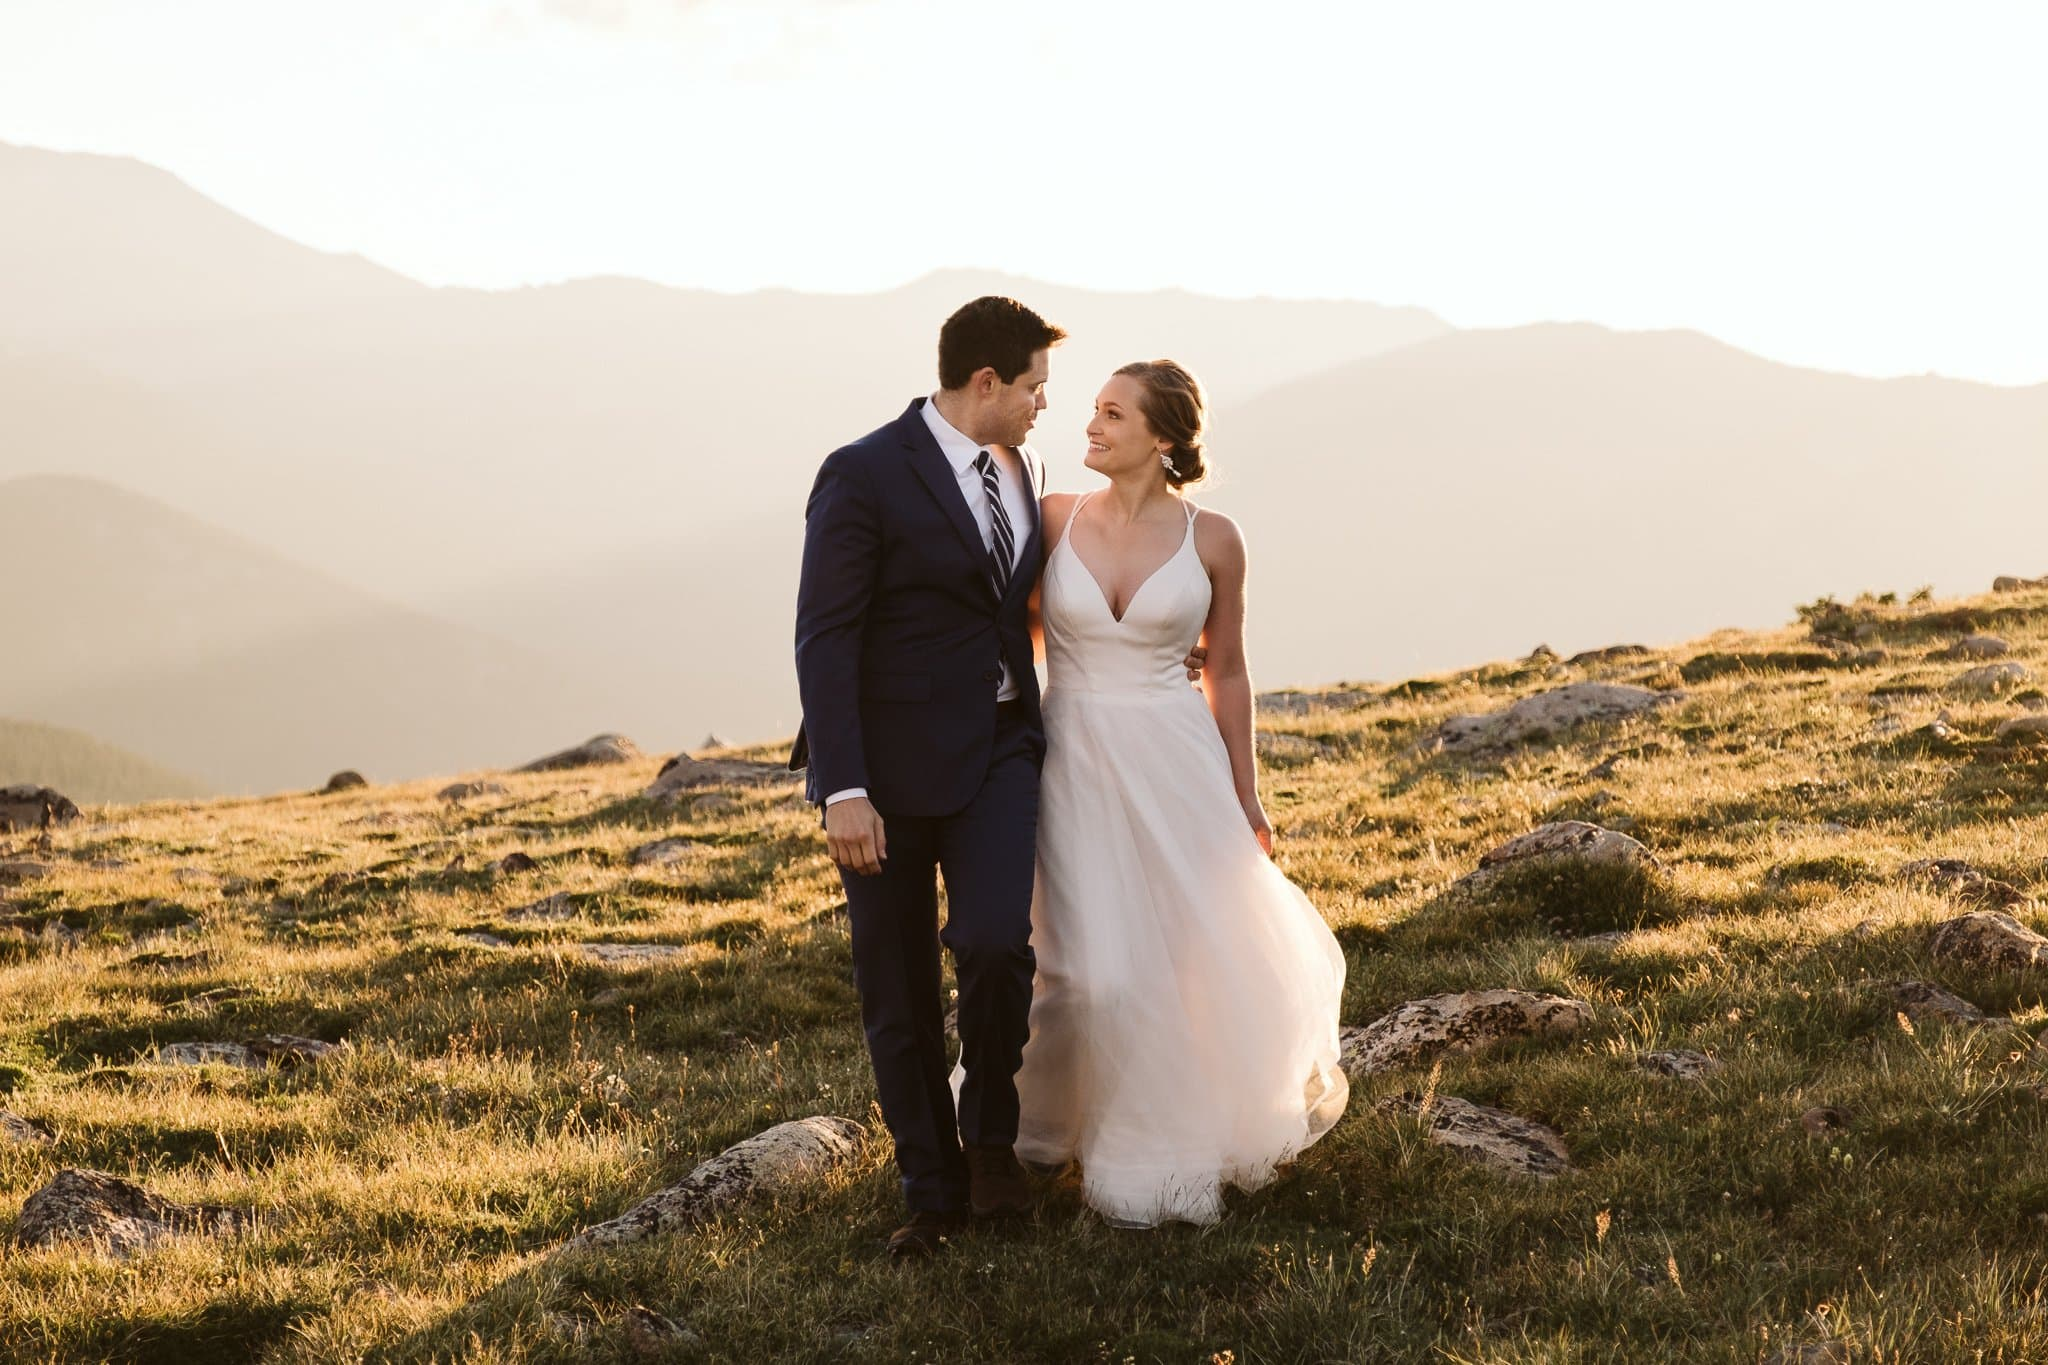 Colorado adventure elopement at sunrise, hiking wedding in the Rocky Mountains